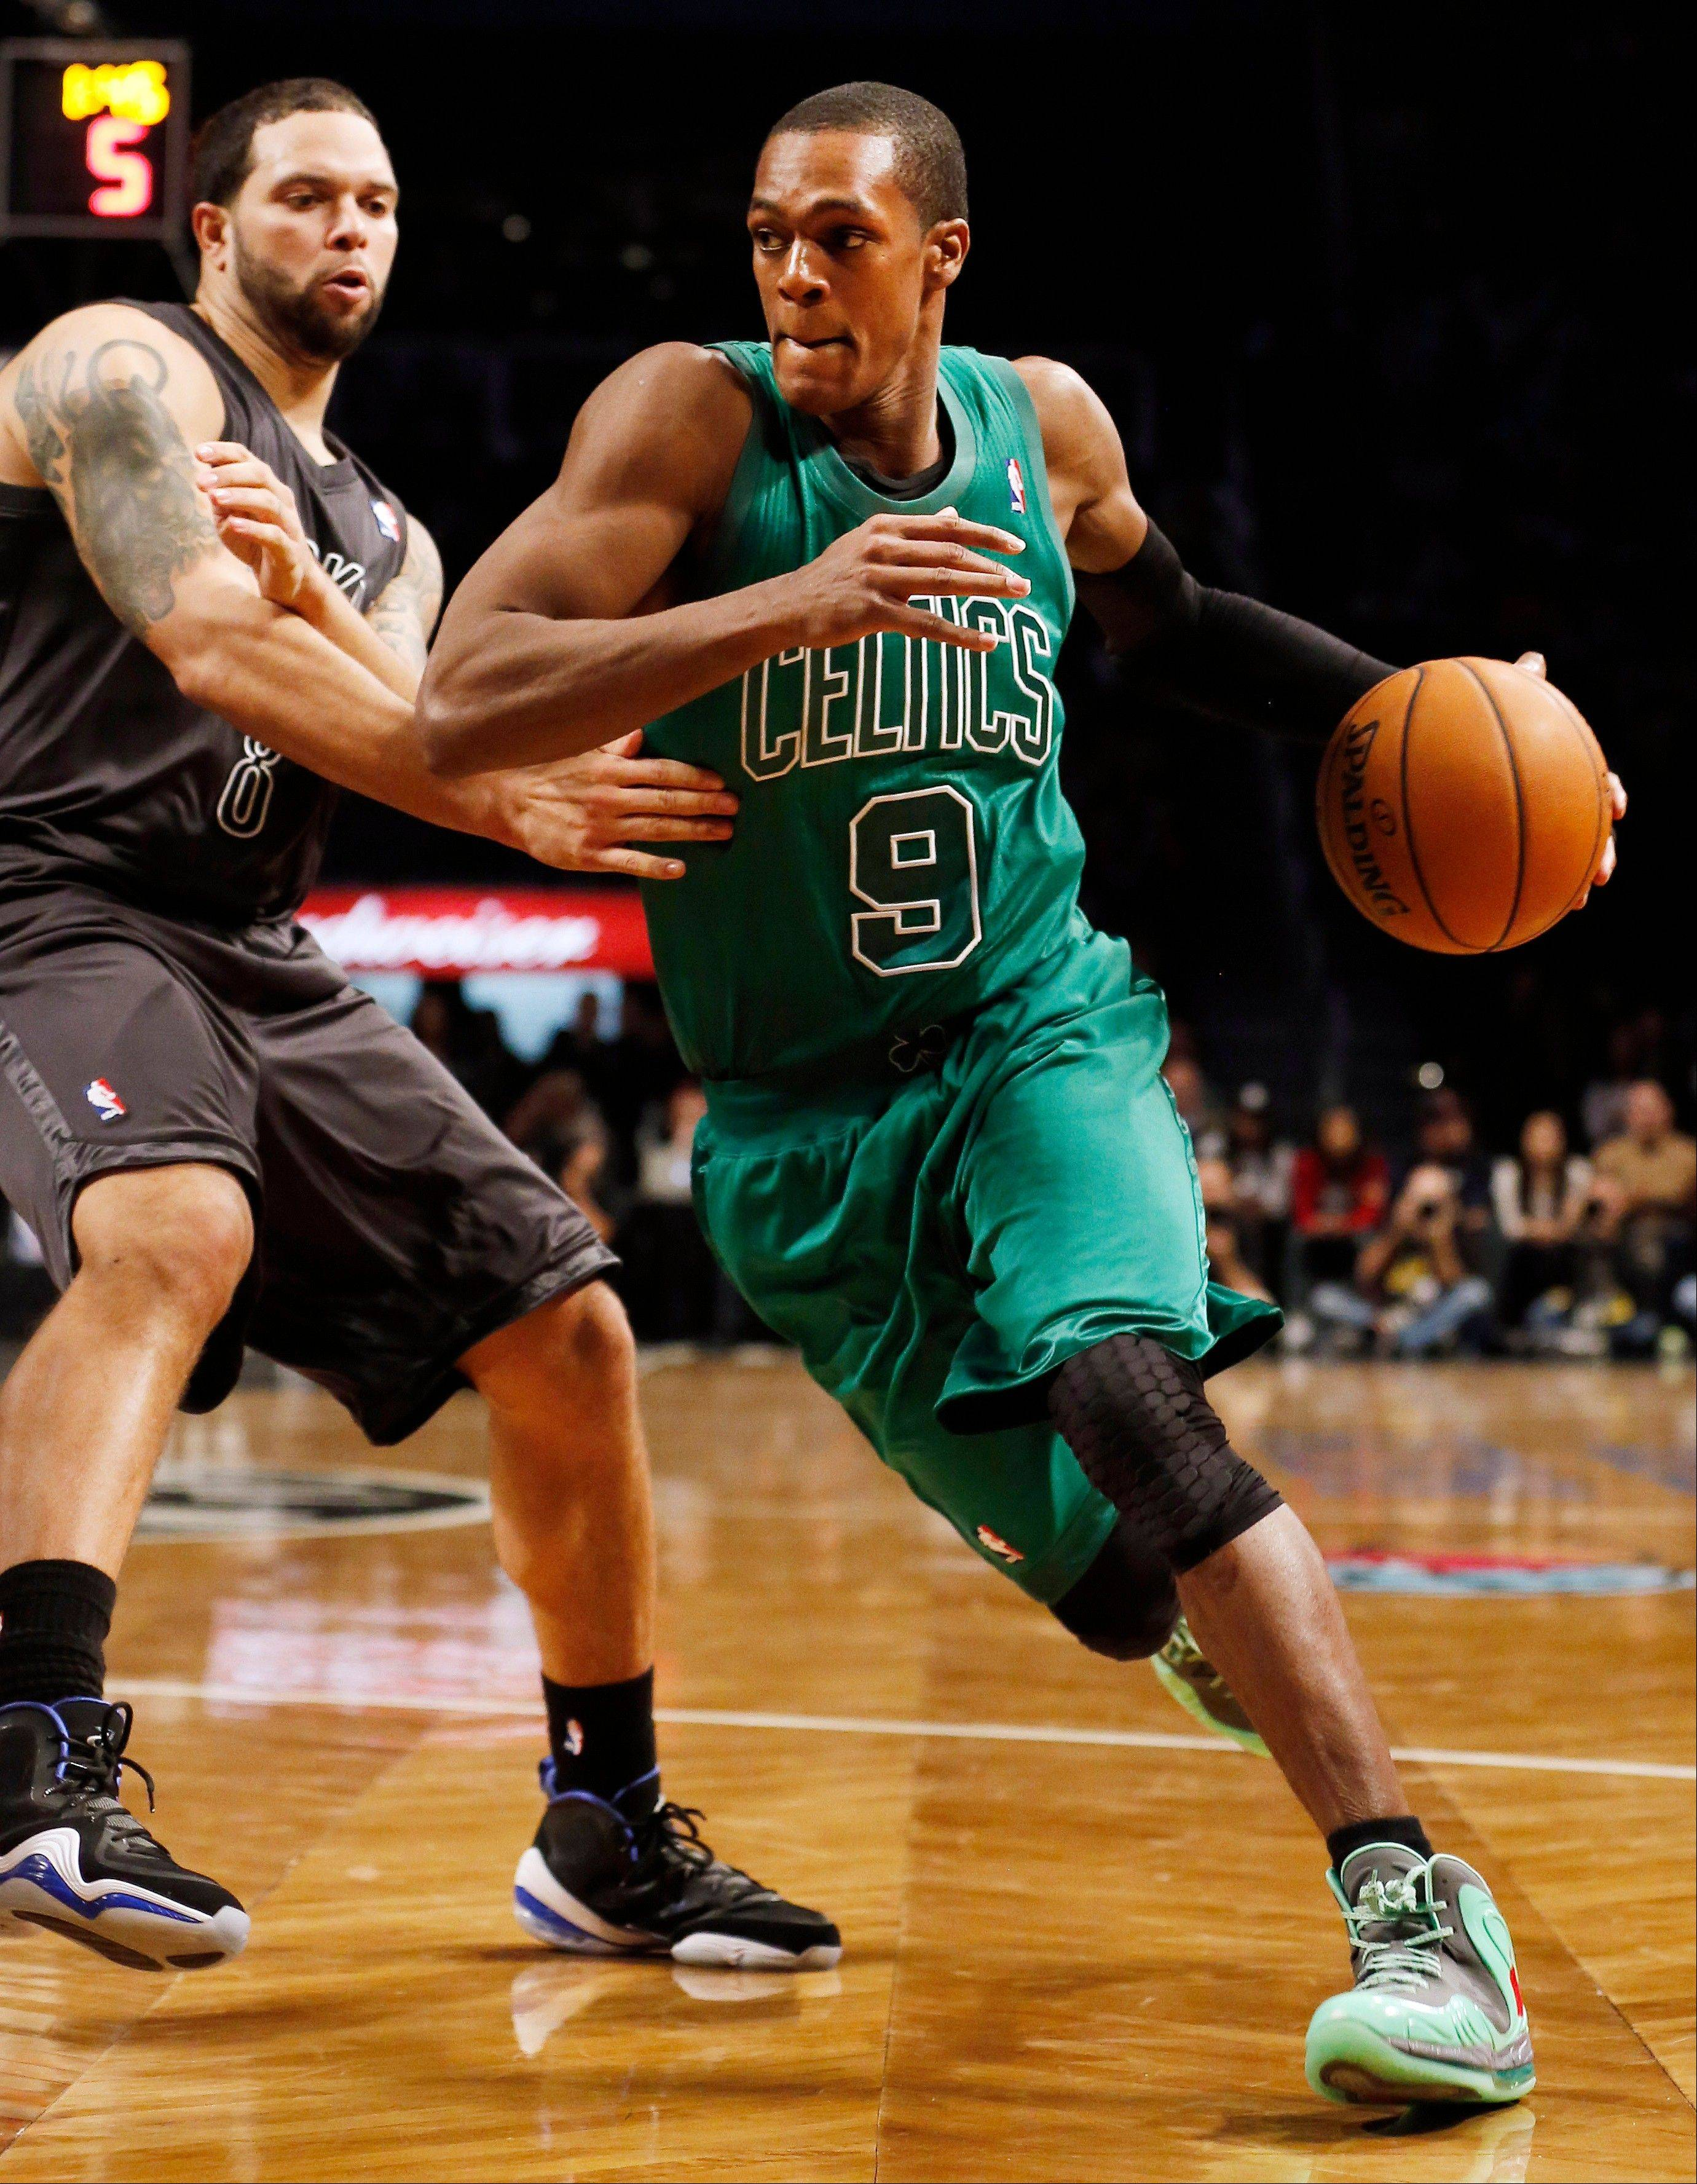 Boston Celtics guard Rajon Rondo drives to the basket against Brooklyn Nets guard Deron Williams Tuesday during the second half at Barclays Center in New York. Boston won 93-76.